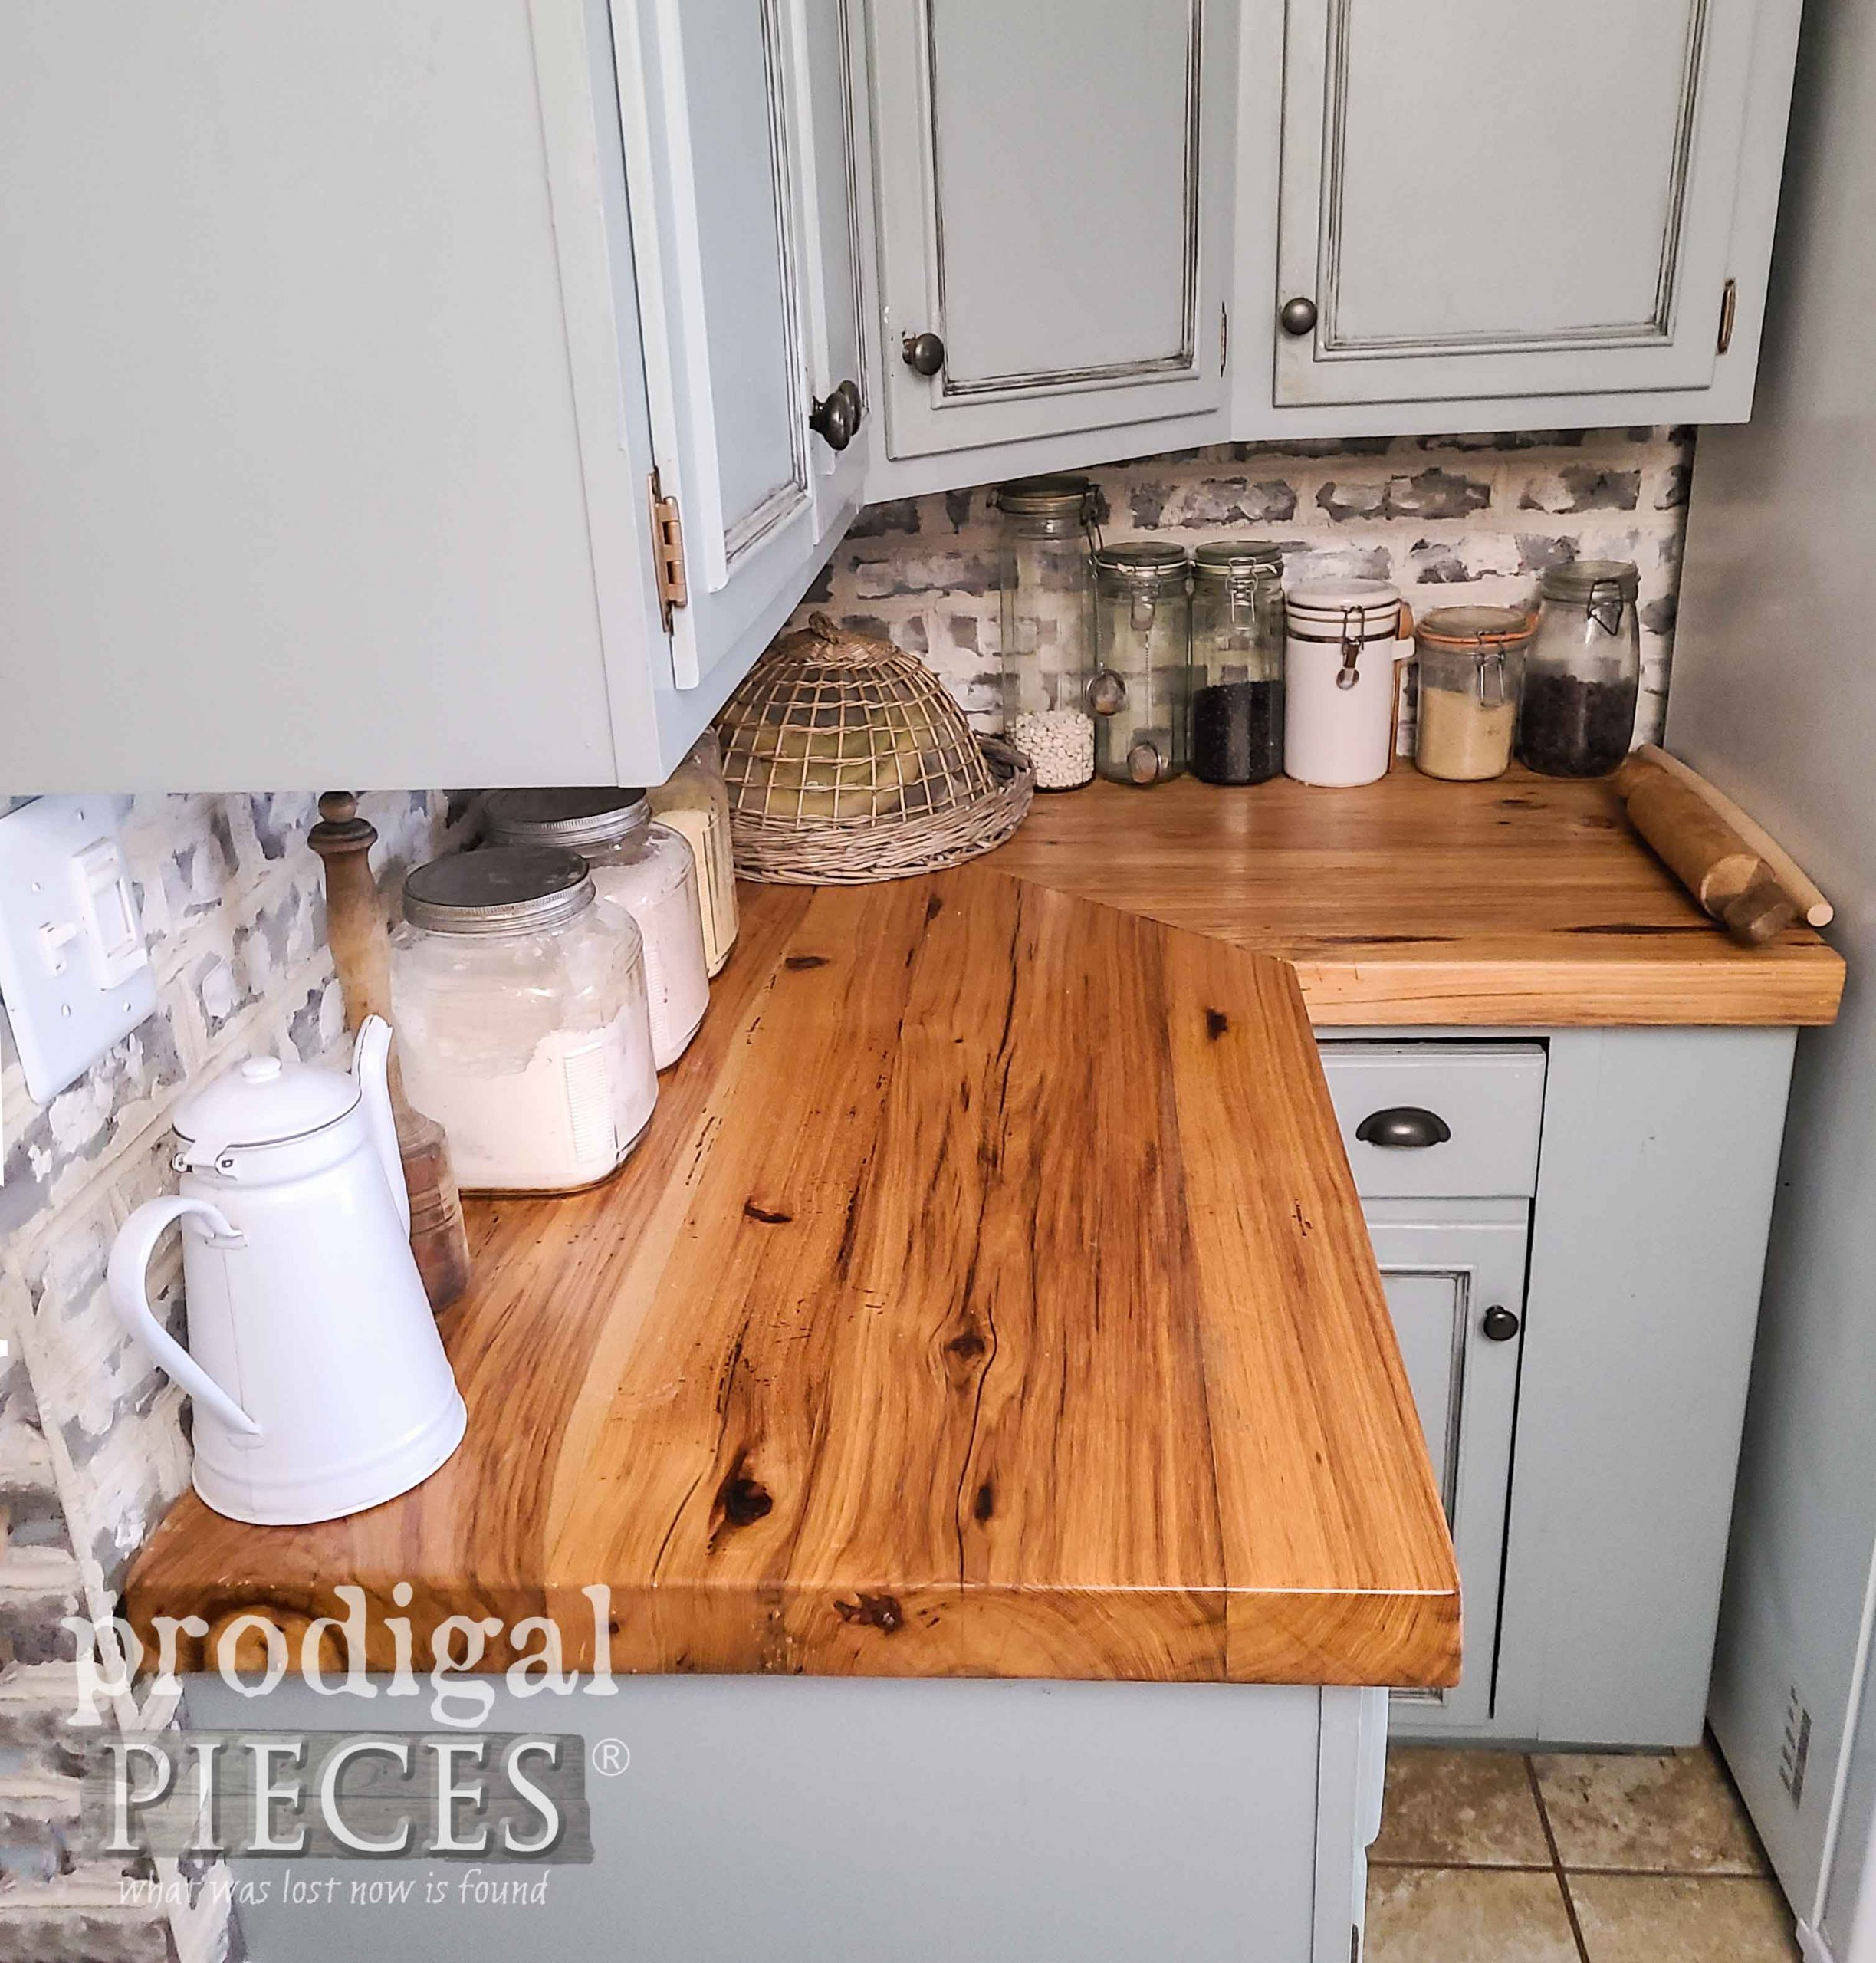 Reclaimed Wood Kitchen Counters by Prodigal Pieces | prodigalpieces.com #prodigalpieces #farmhouse #diy #home #kitchen